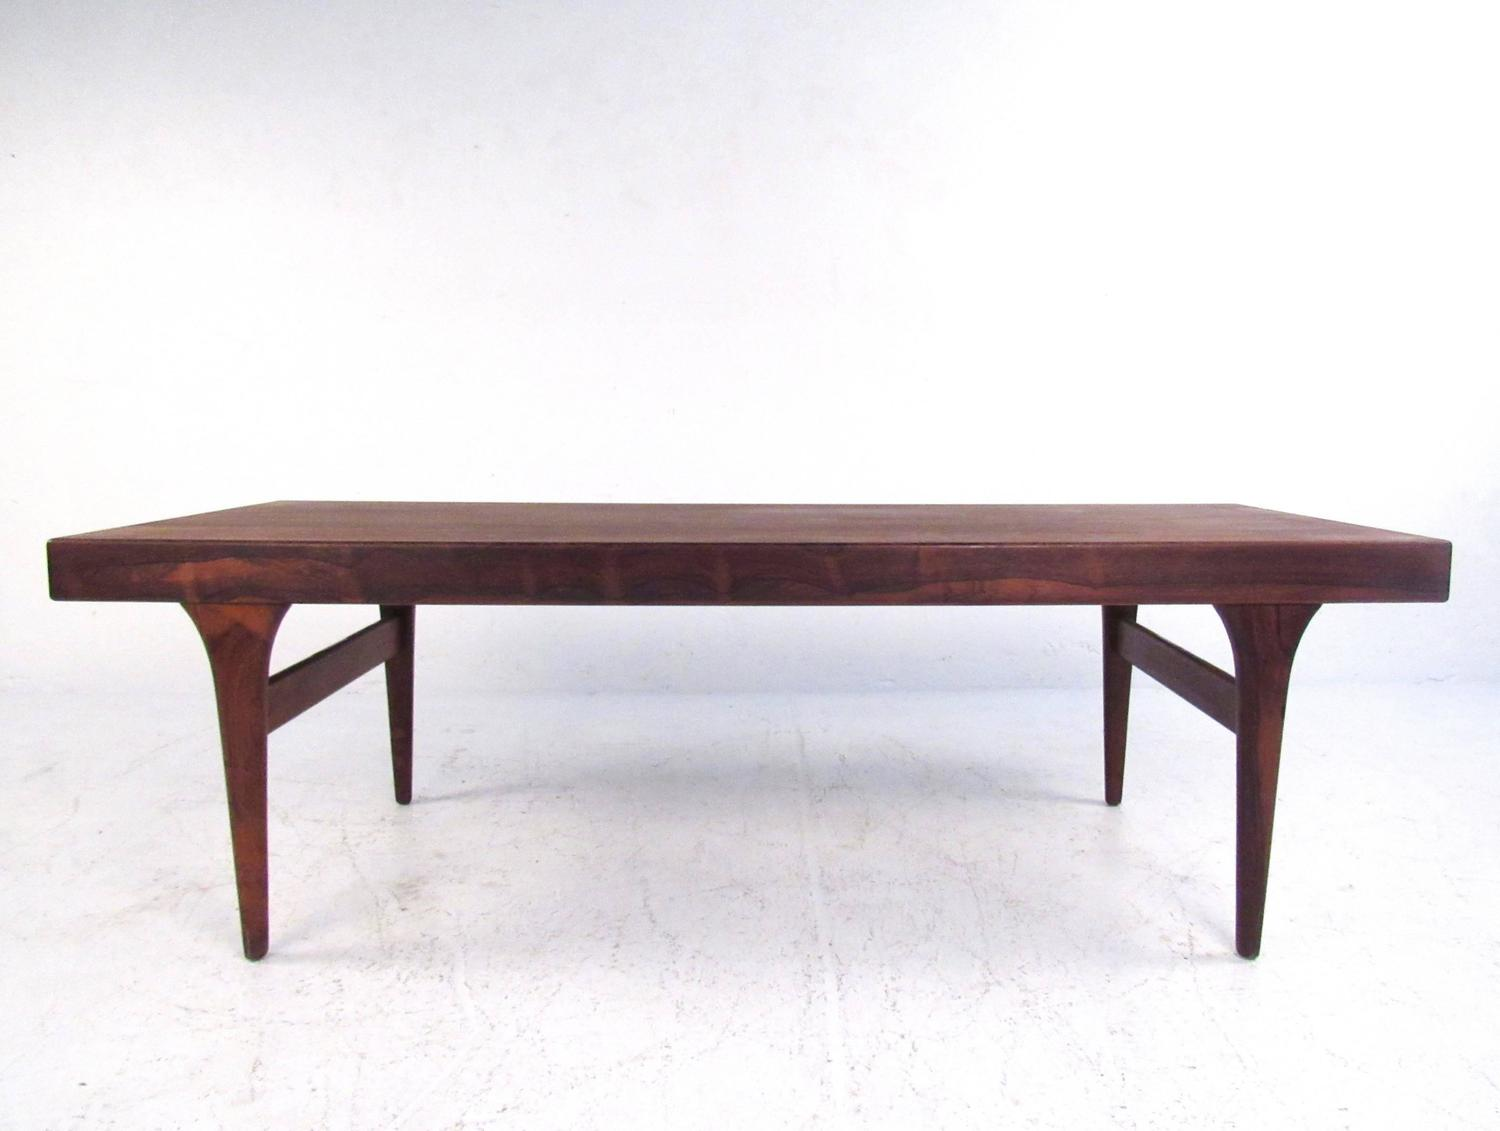 Johannes andersen rosewood coffee table with draw leaf for Coffee table extension